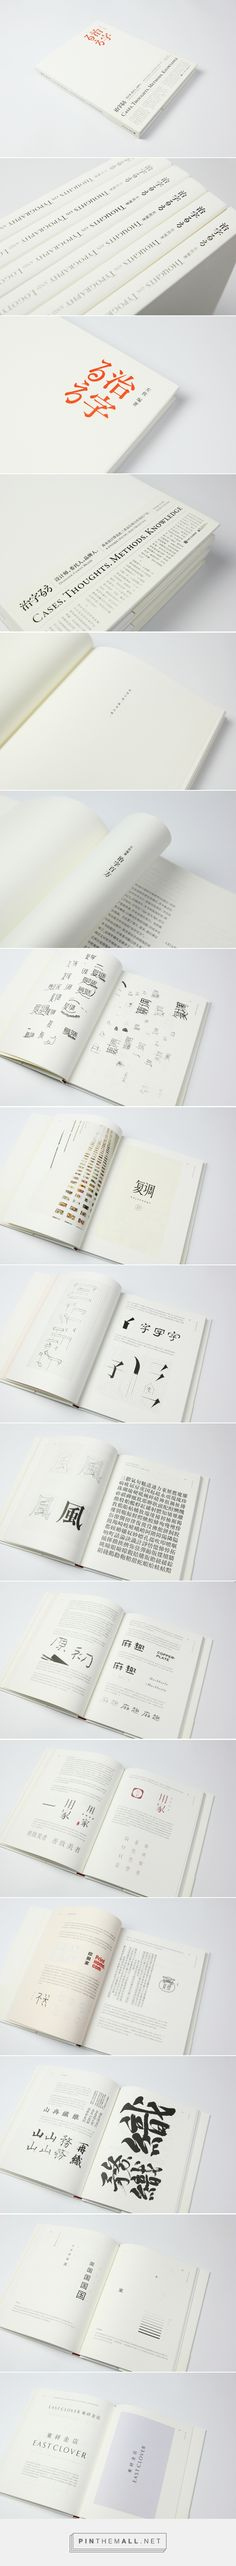 治字百方/Thoughts on Typography and Logotype on Behance... - a grouped images picture - Pin Them All